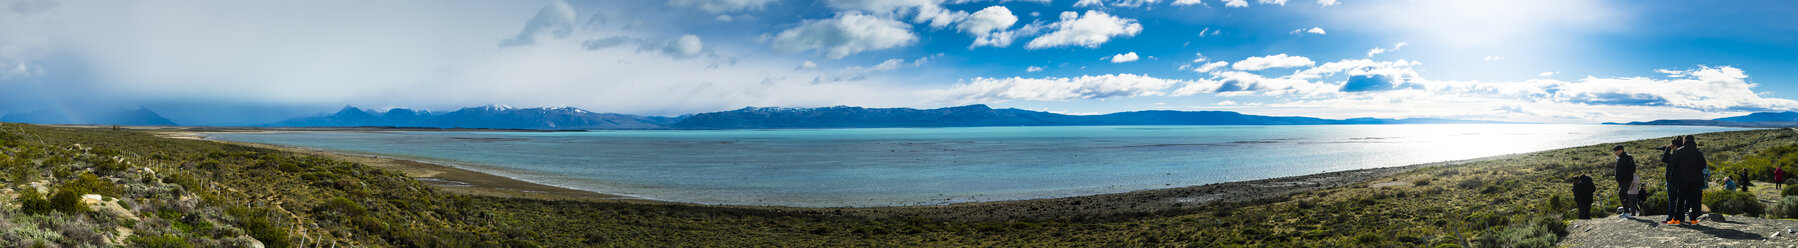 Argentina, El Calafate, Patagonia, Panoramic view of Lago Argentino - AM05626